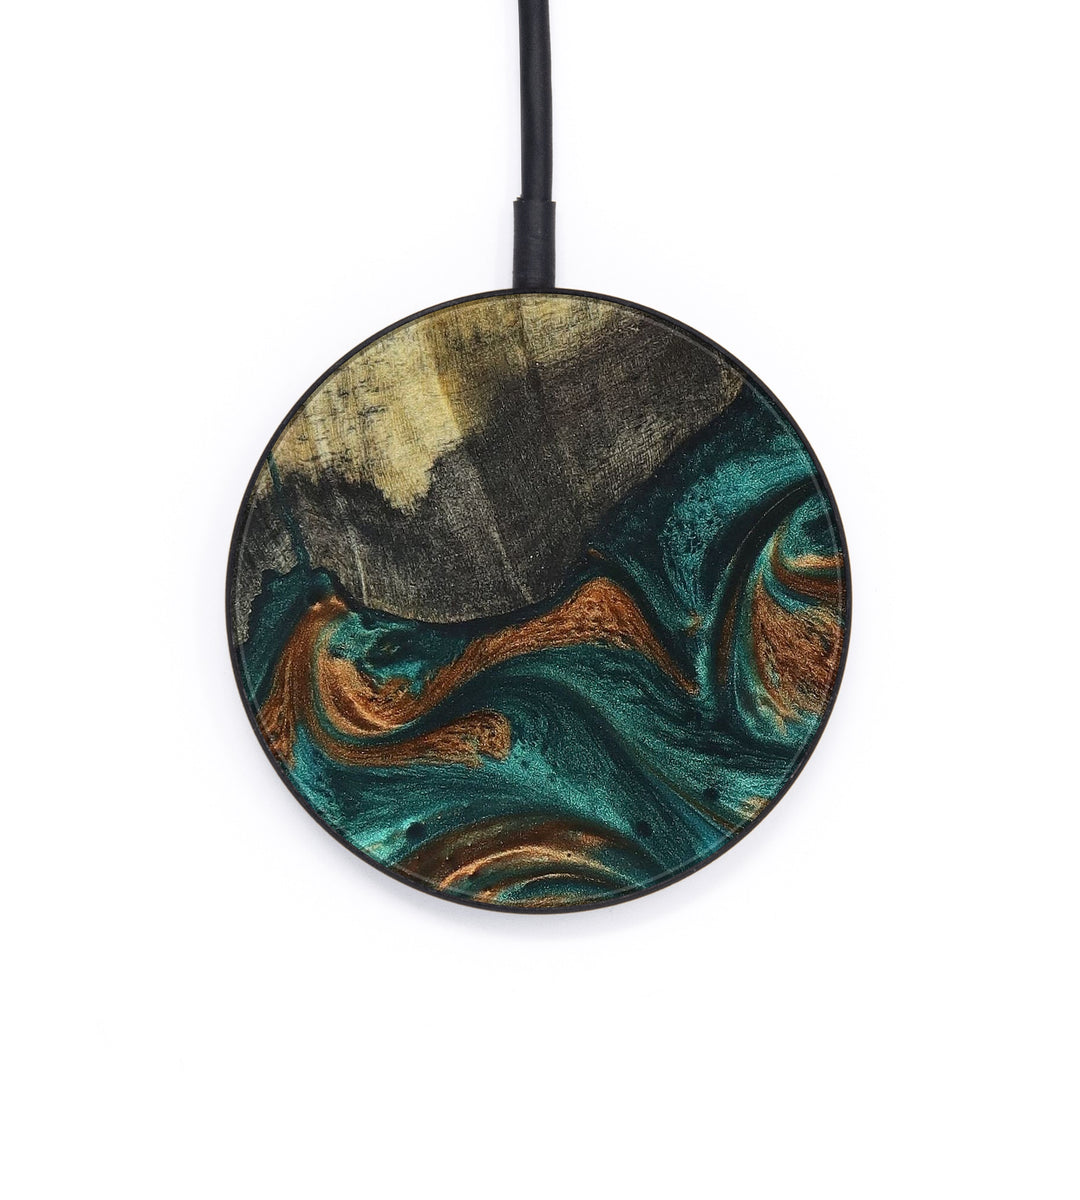 Circle Wood+Resin Wireless Charger - Ealasaid (Teal & Gold, 400099)